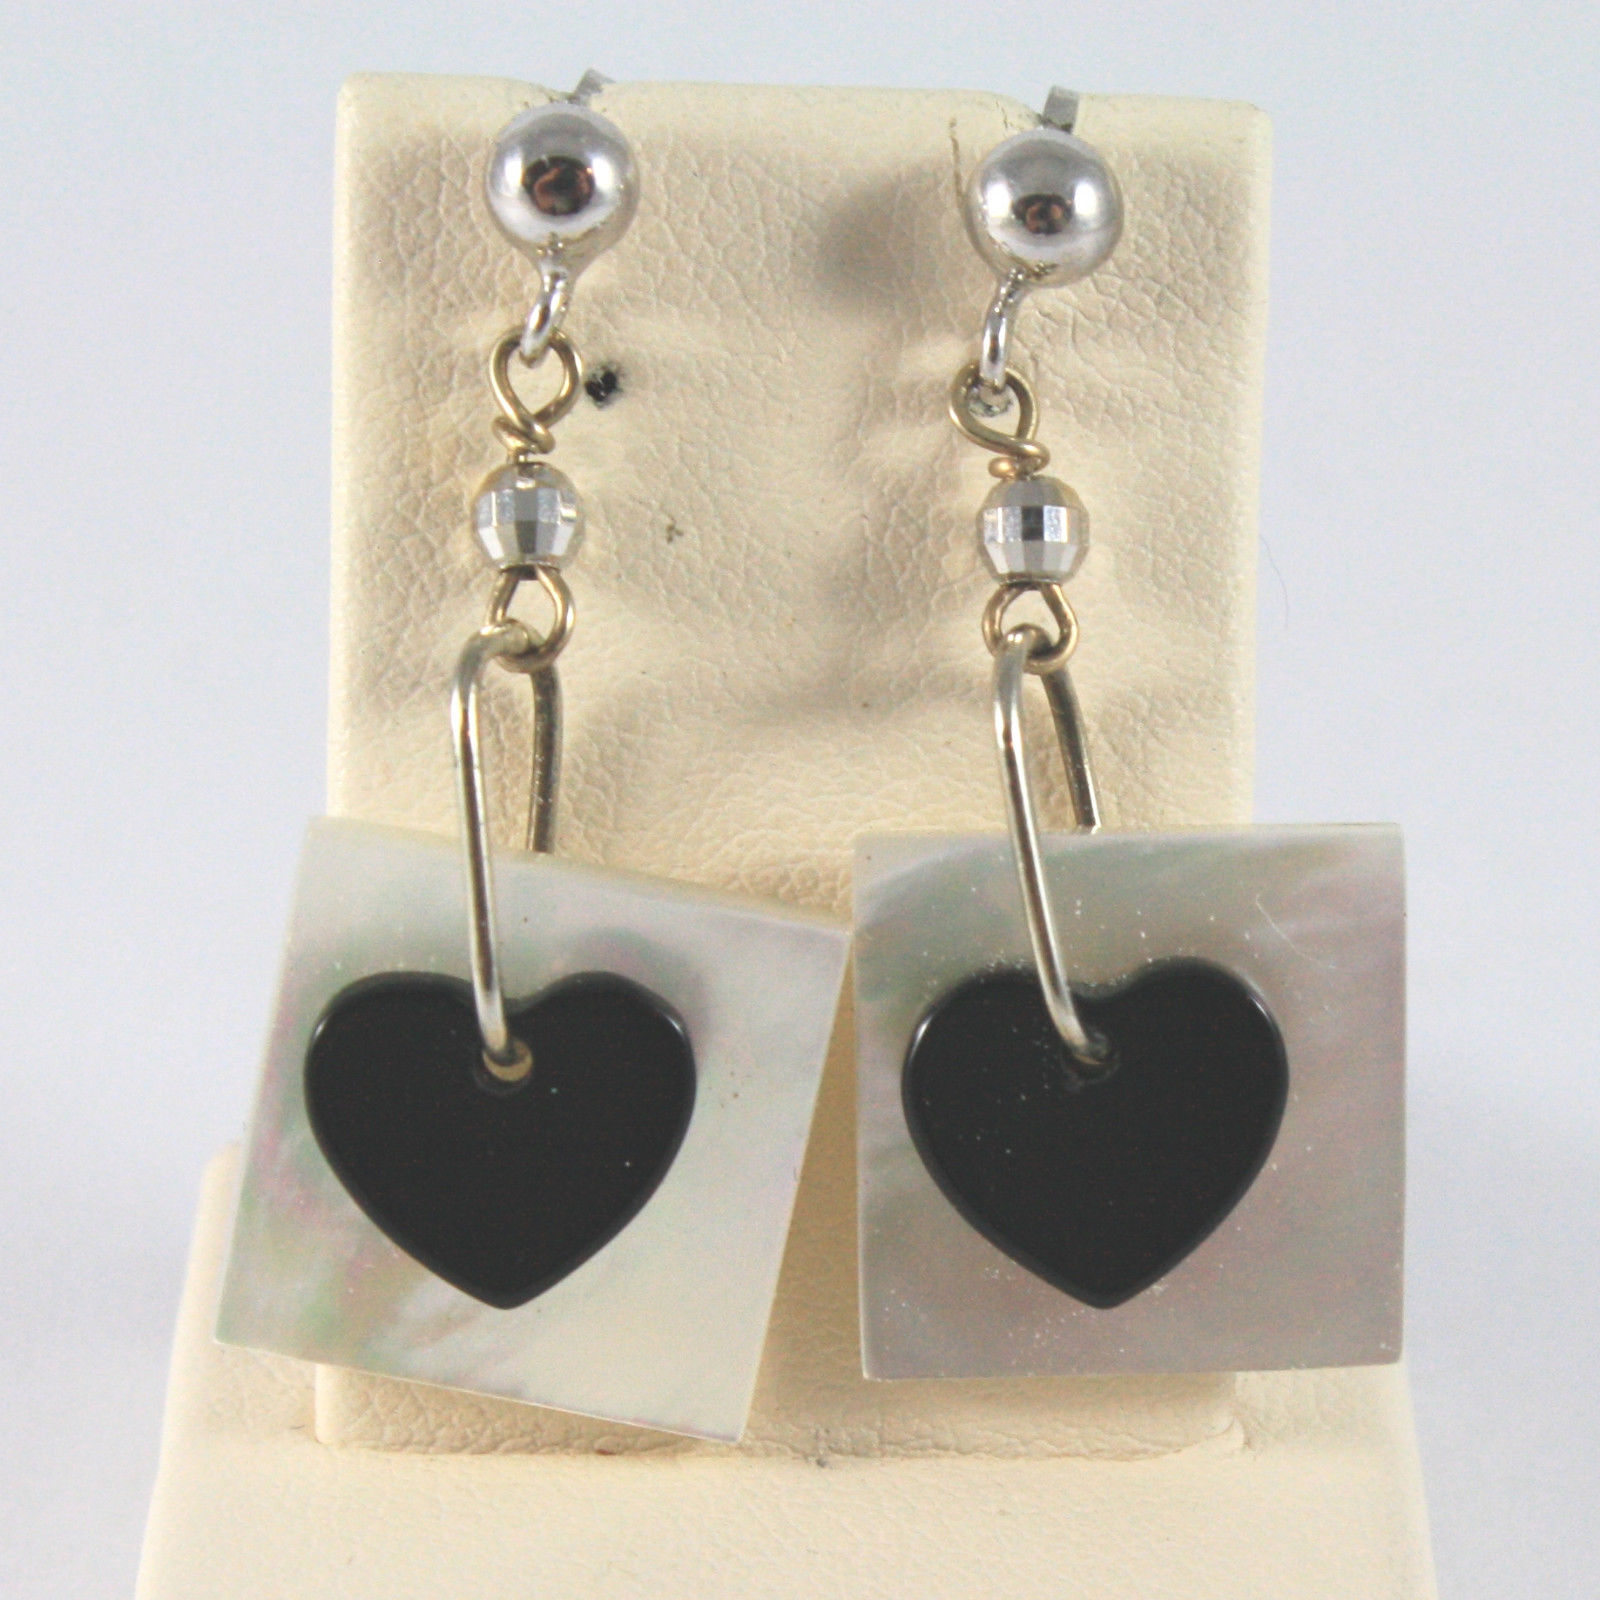 SOLID 18K WHITE GOLD EARRINGS, WITH MOTHER OF PEARL AND ONYX, LENGTH 1,38 IN.